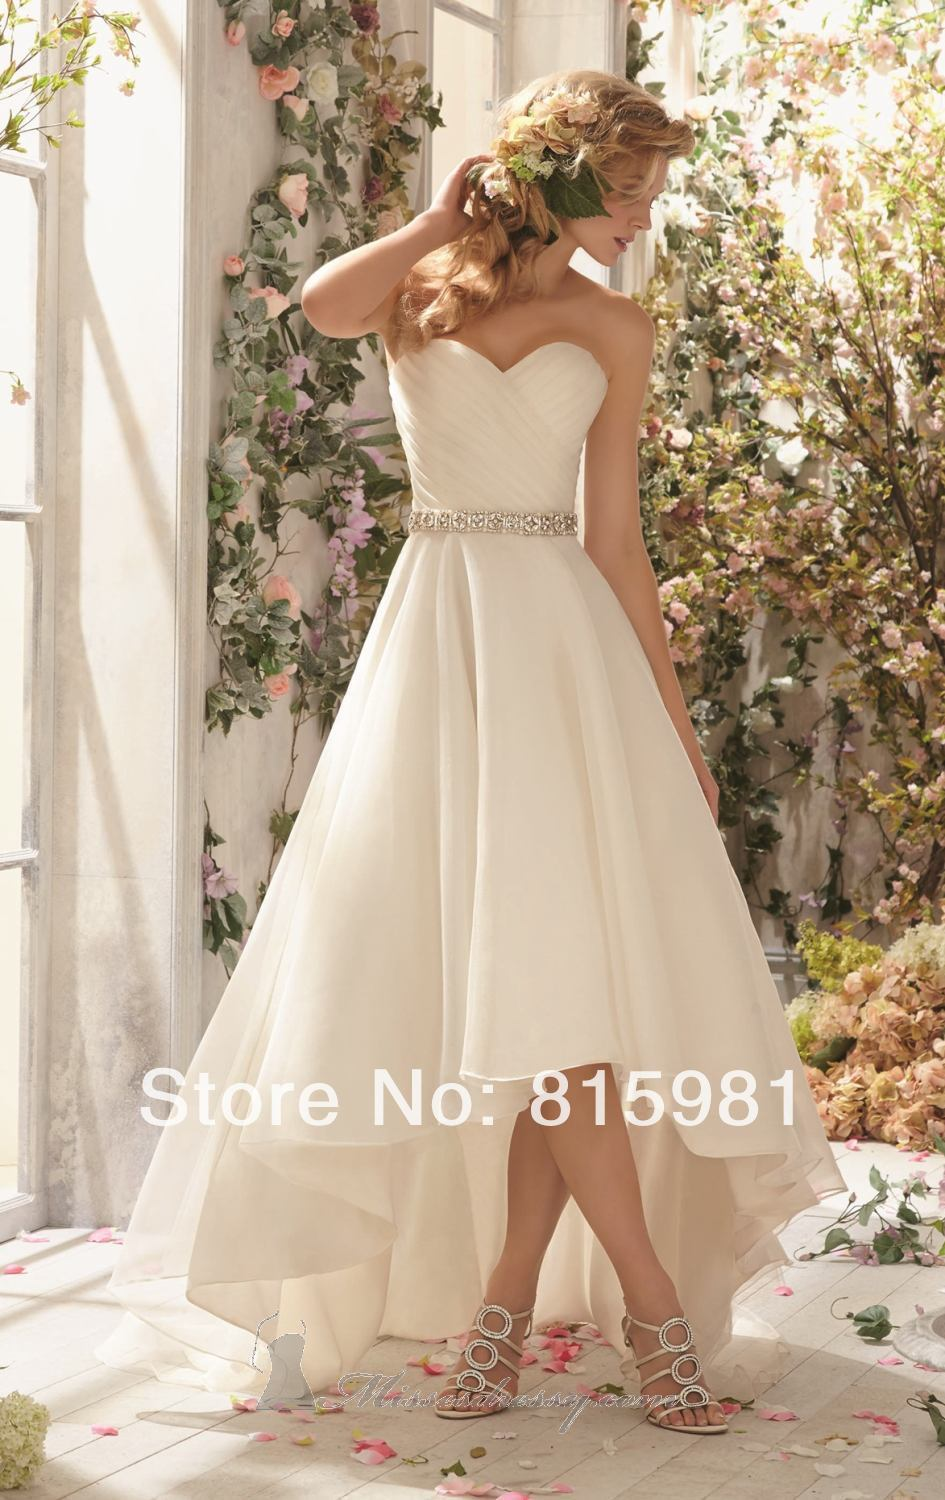 Y9 newivory strapless sweetheart wedding dress bridal gown Wedding dress xs